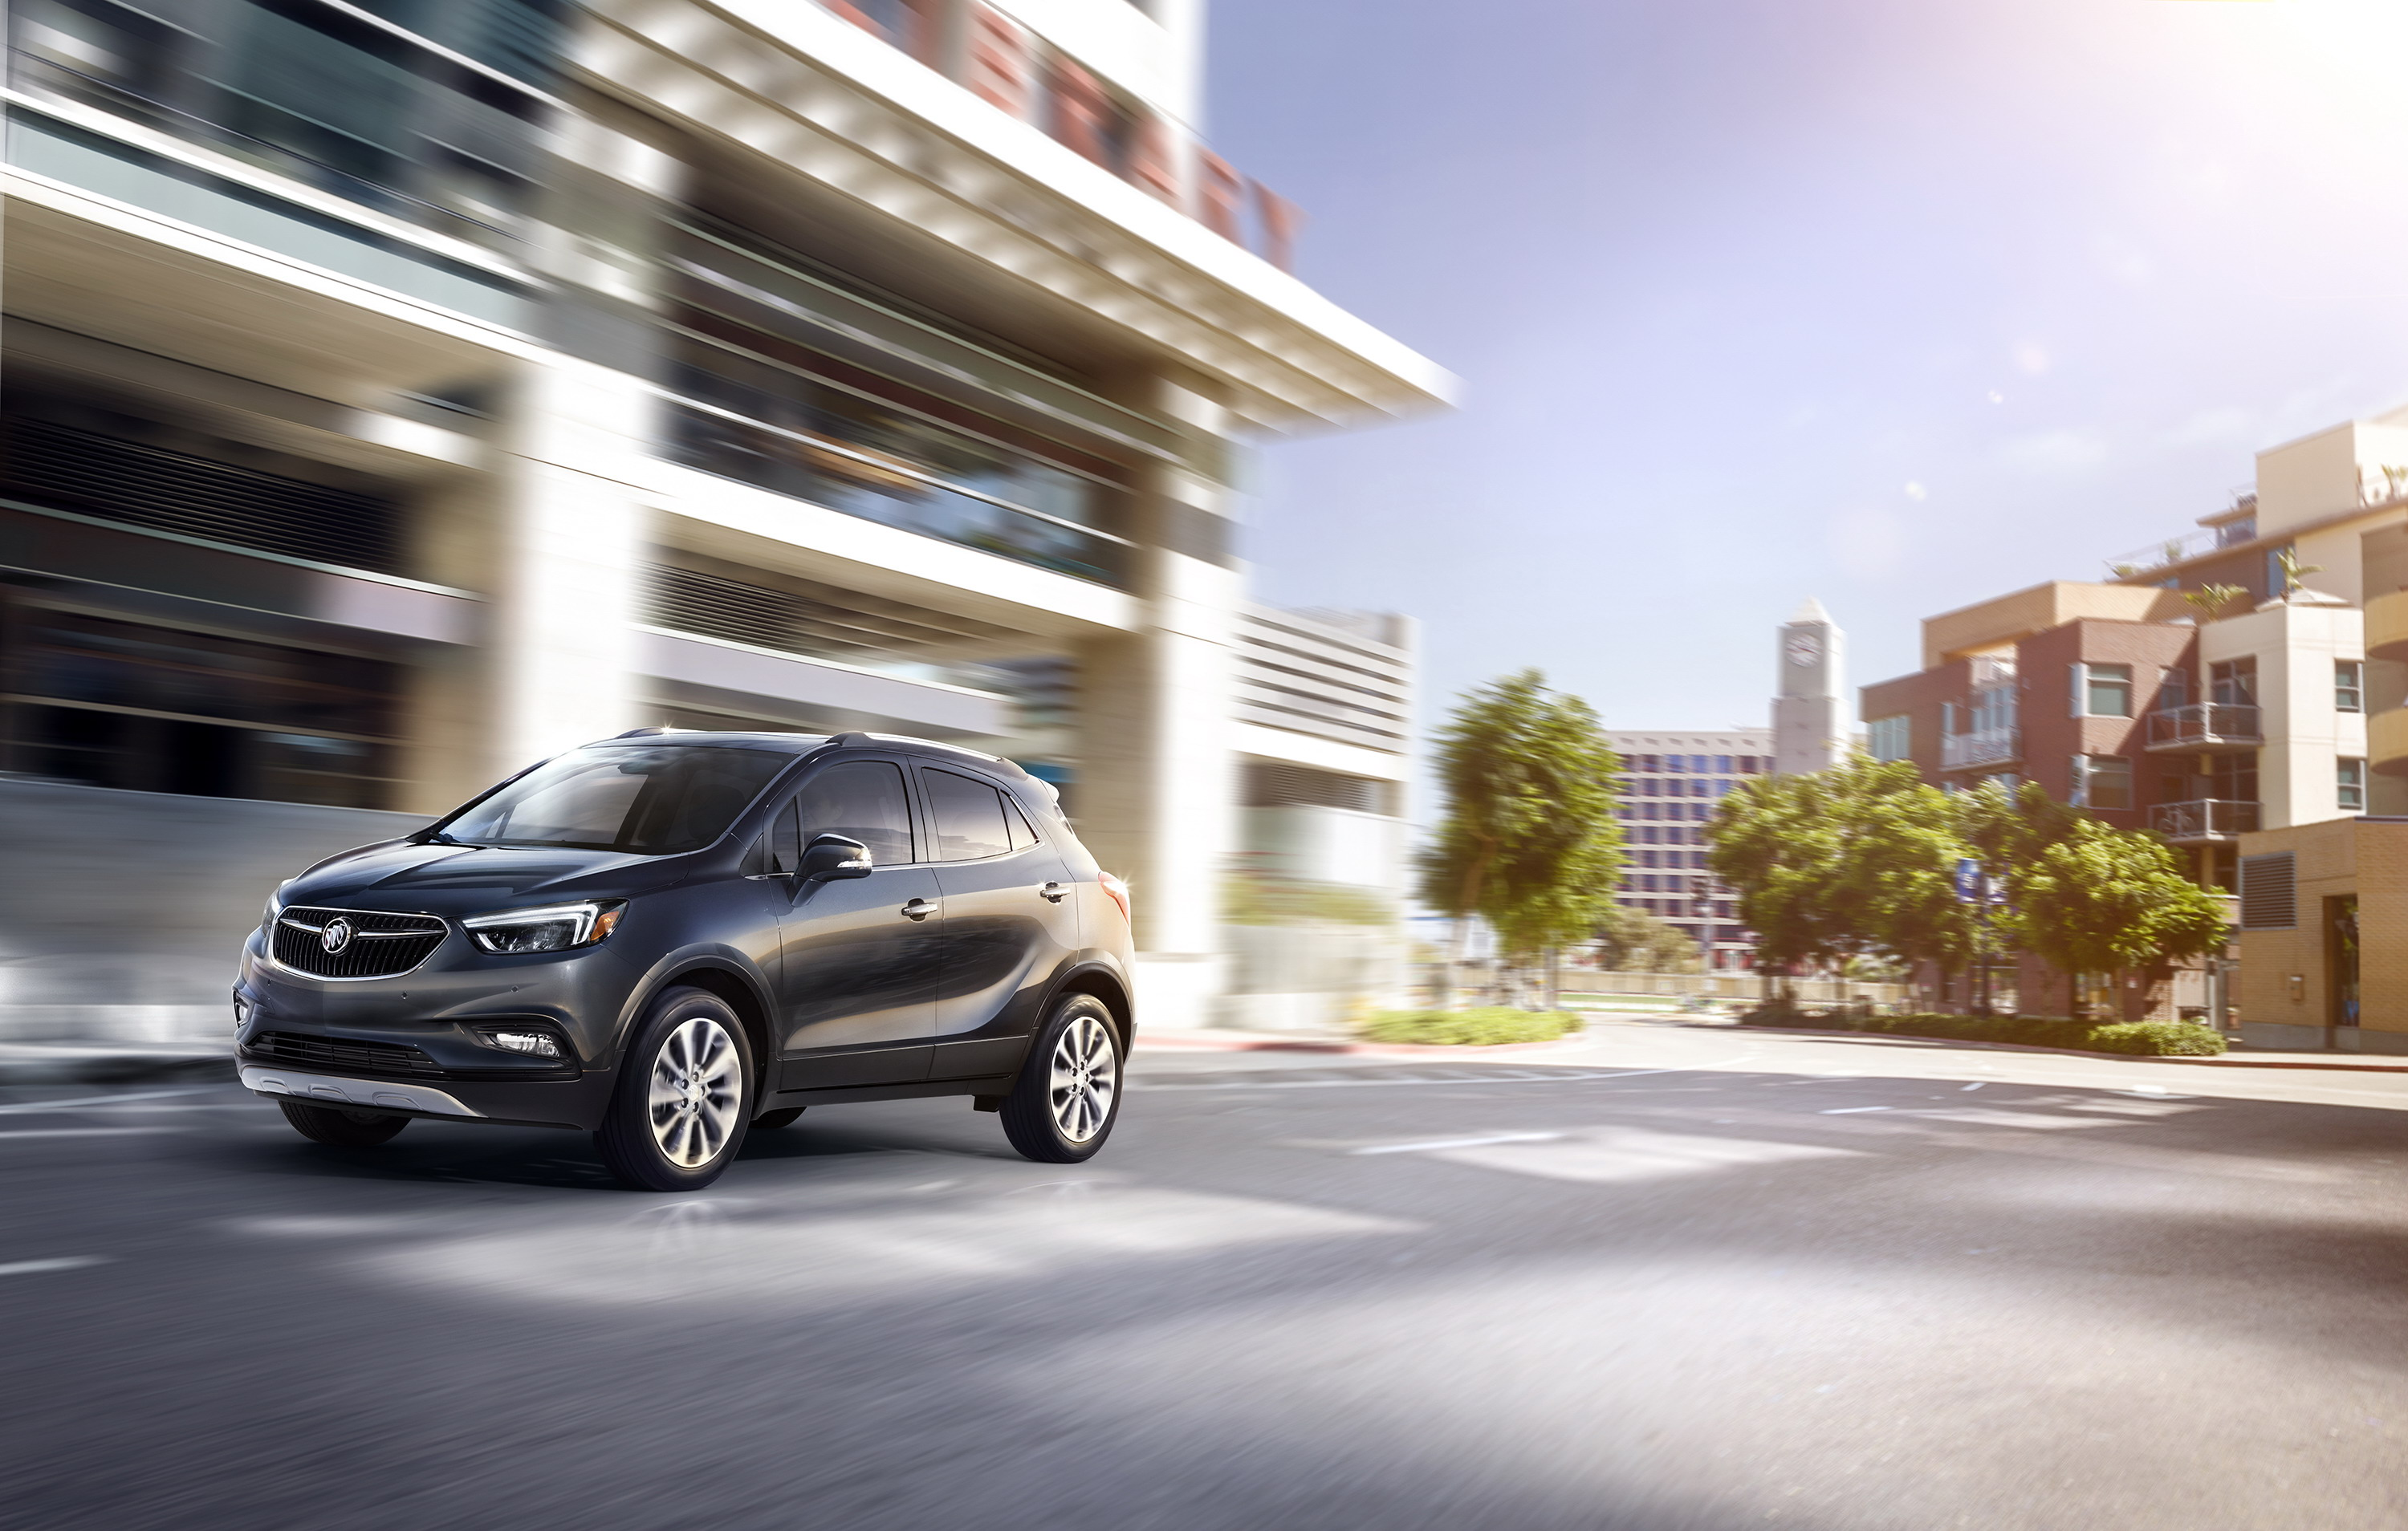 the against specs compare bmw overview review h encore and photos buick competition prices ratings